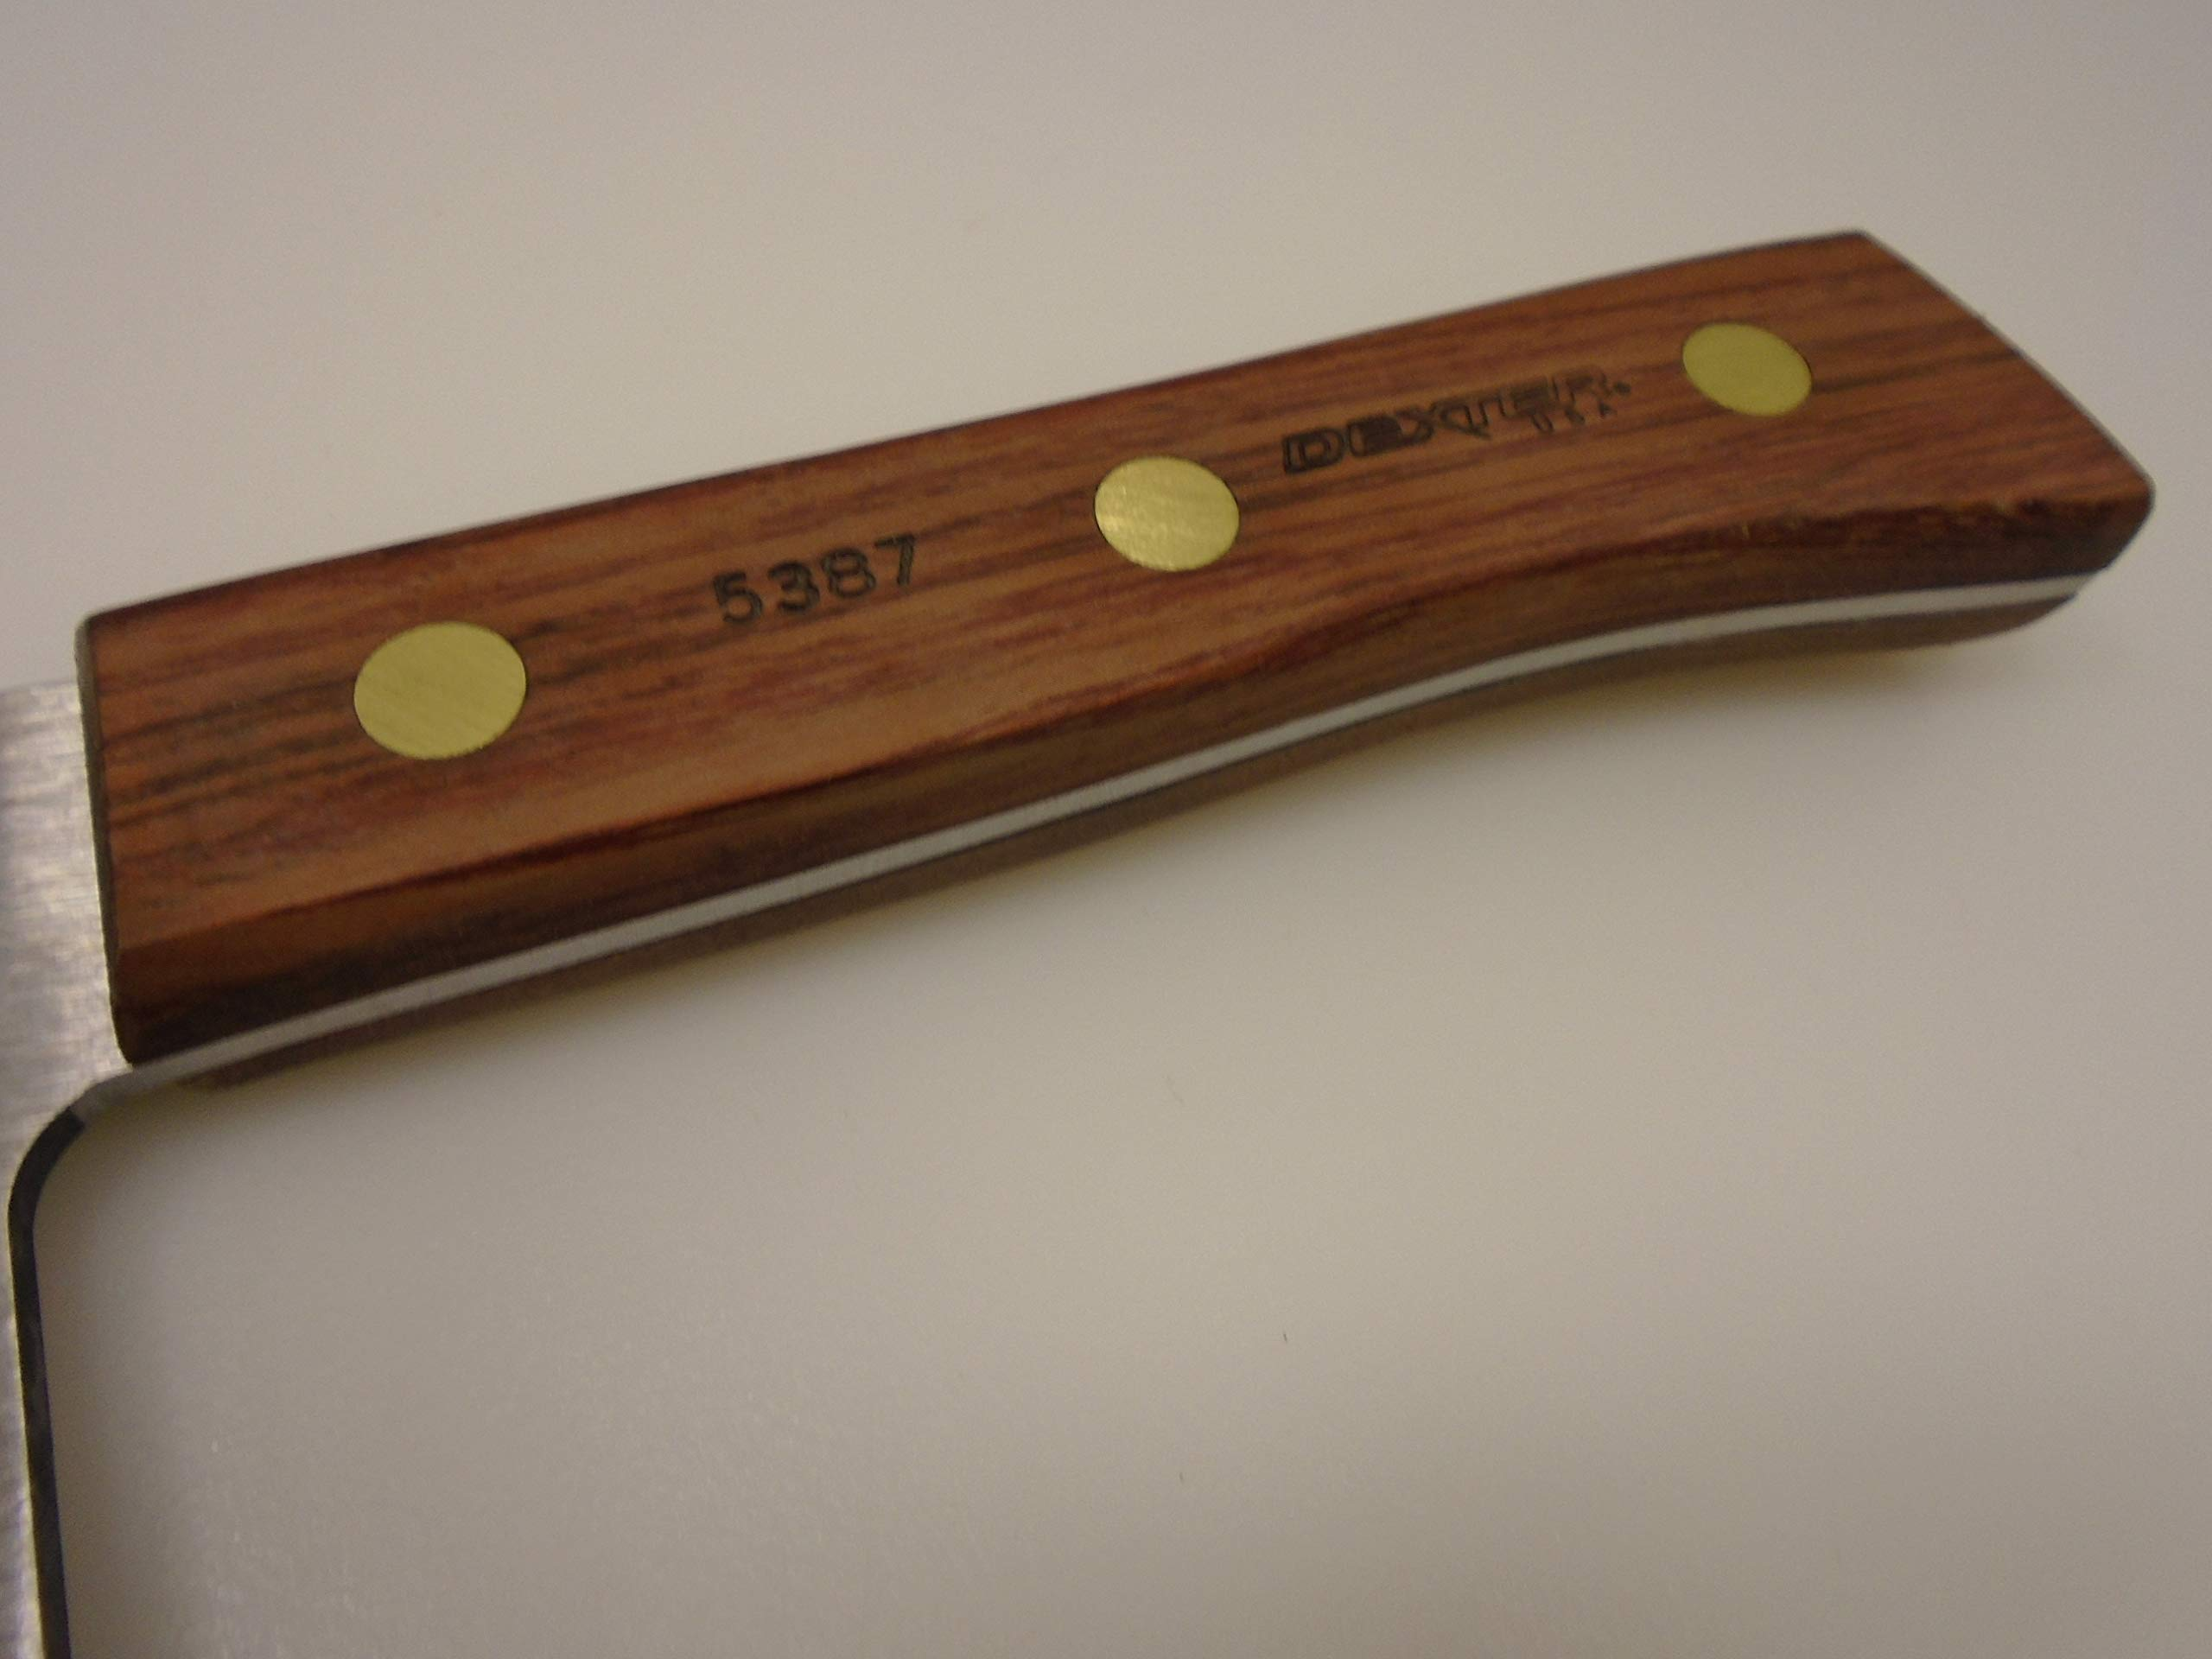 Dexter-Russell Cleaver, 7-Inch, Traditional Series by Dexter-Russell